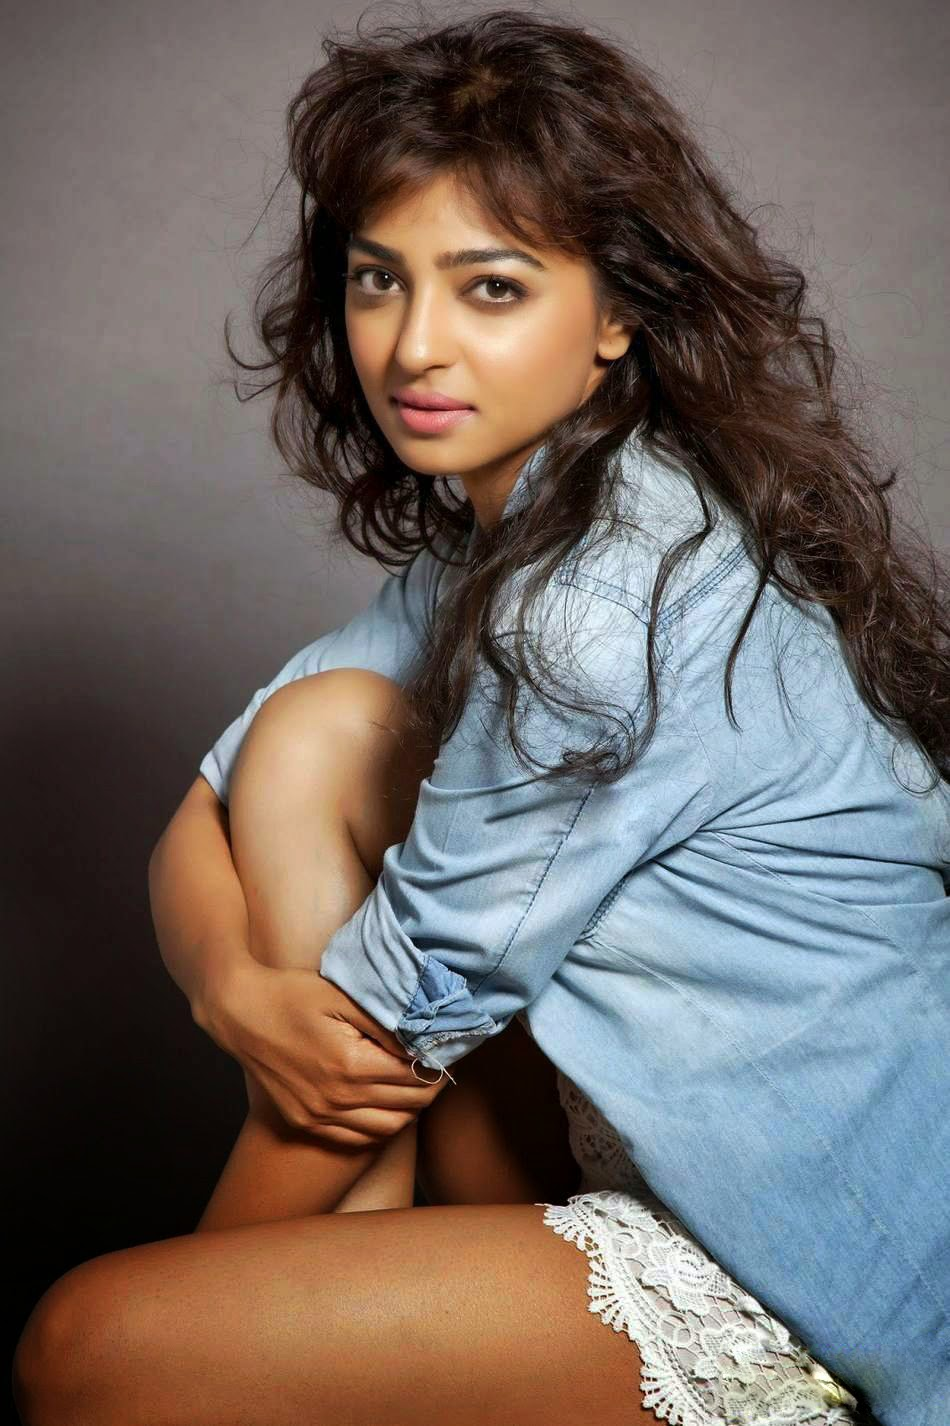 image Radhika apte hot seen